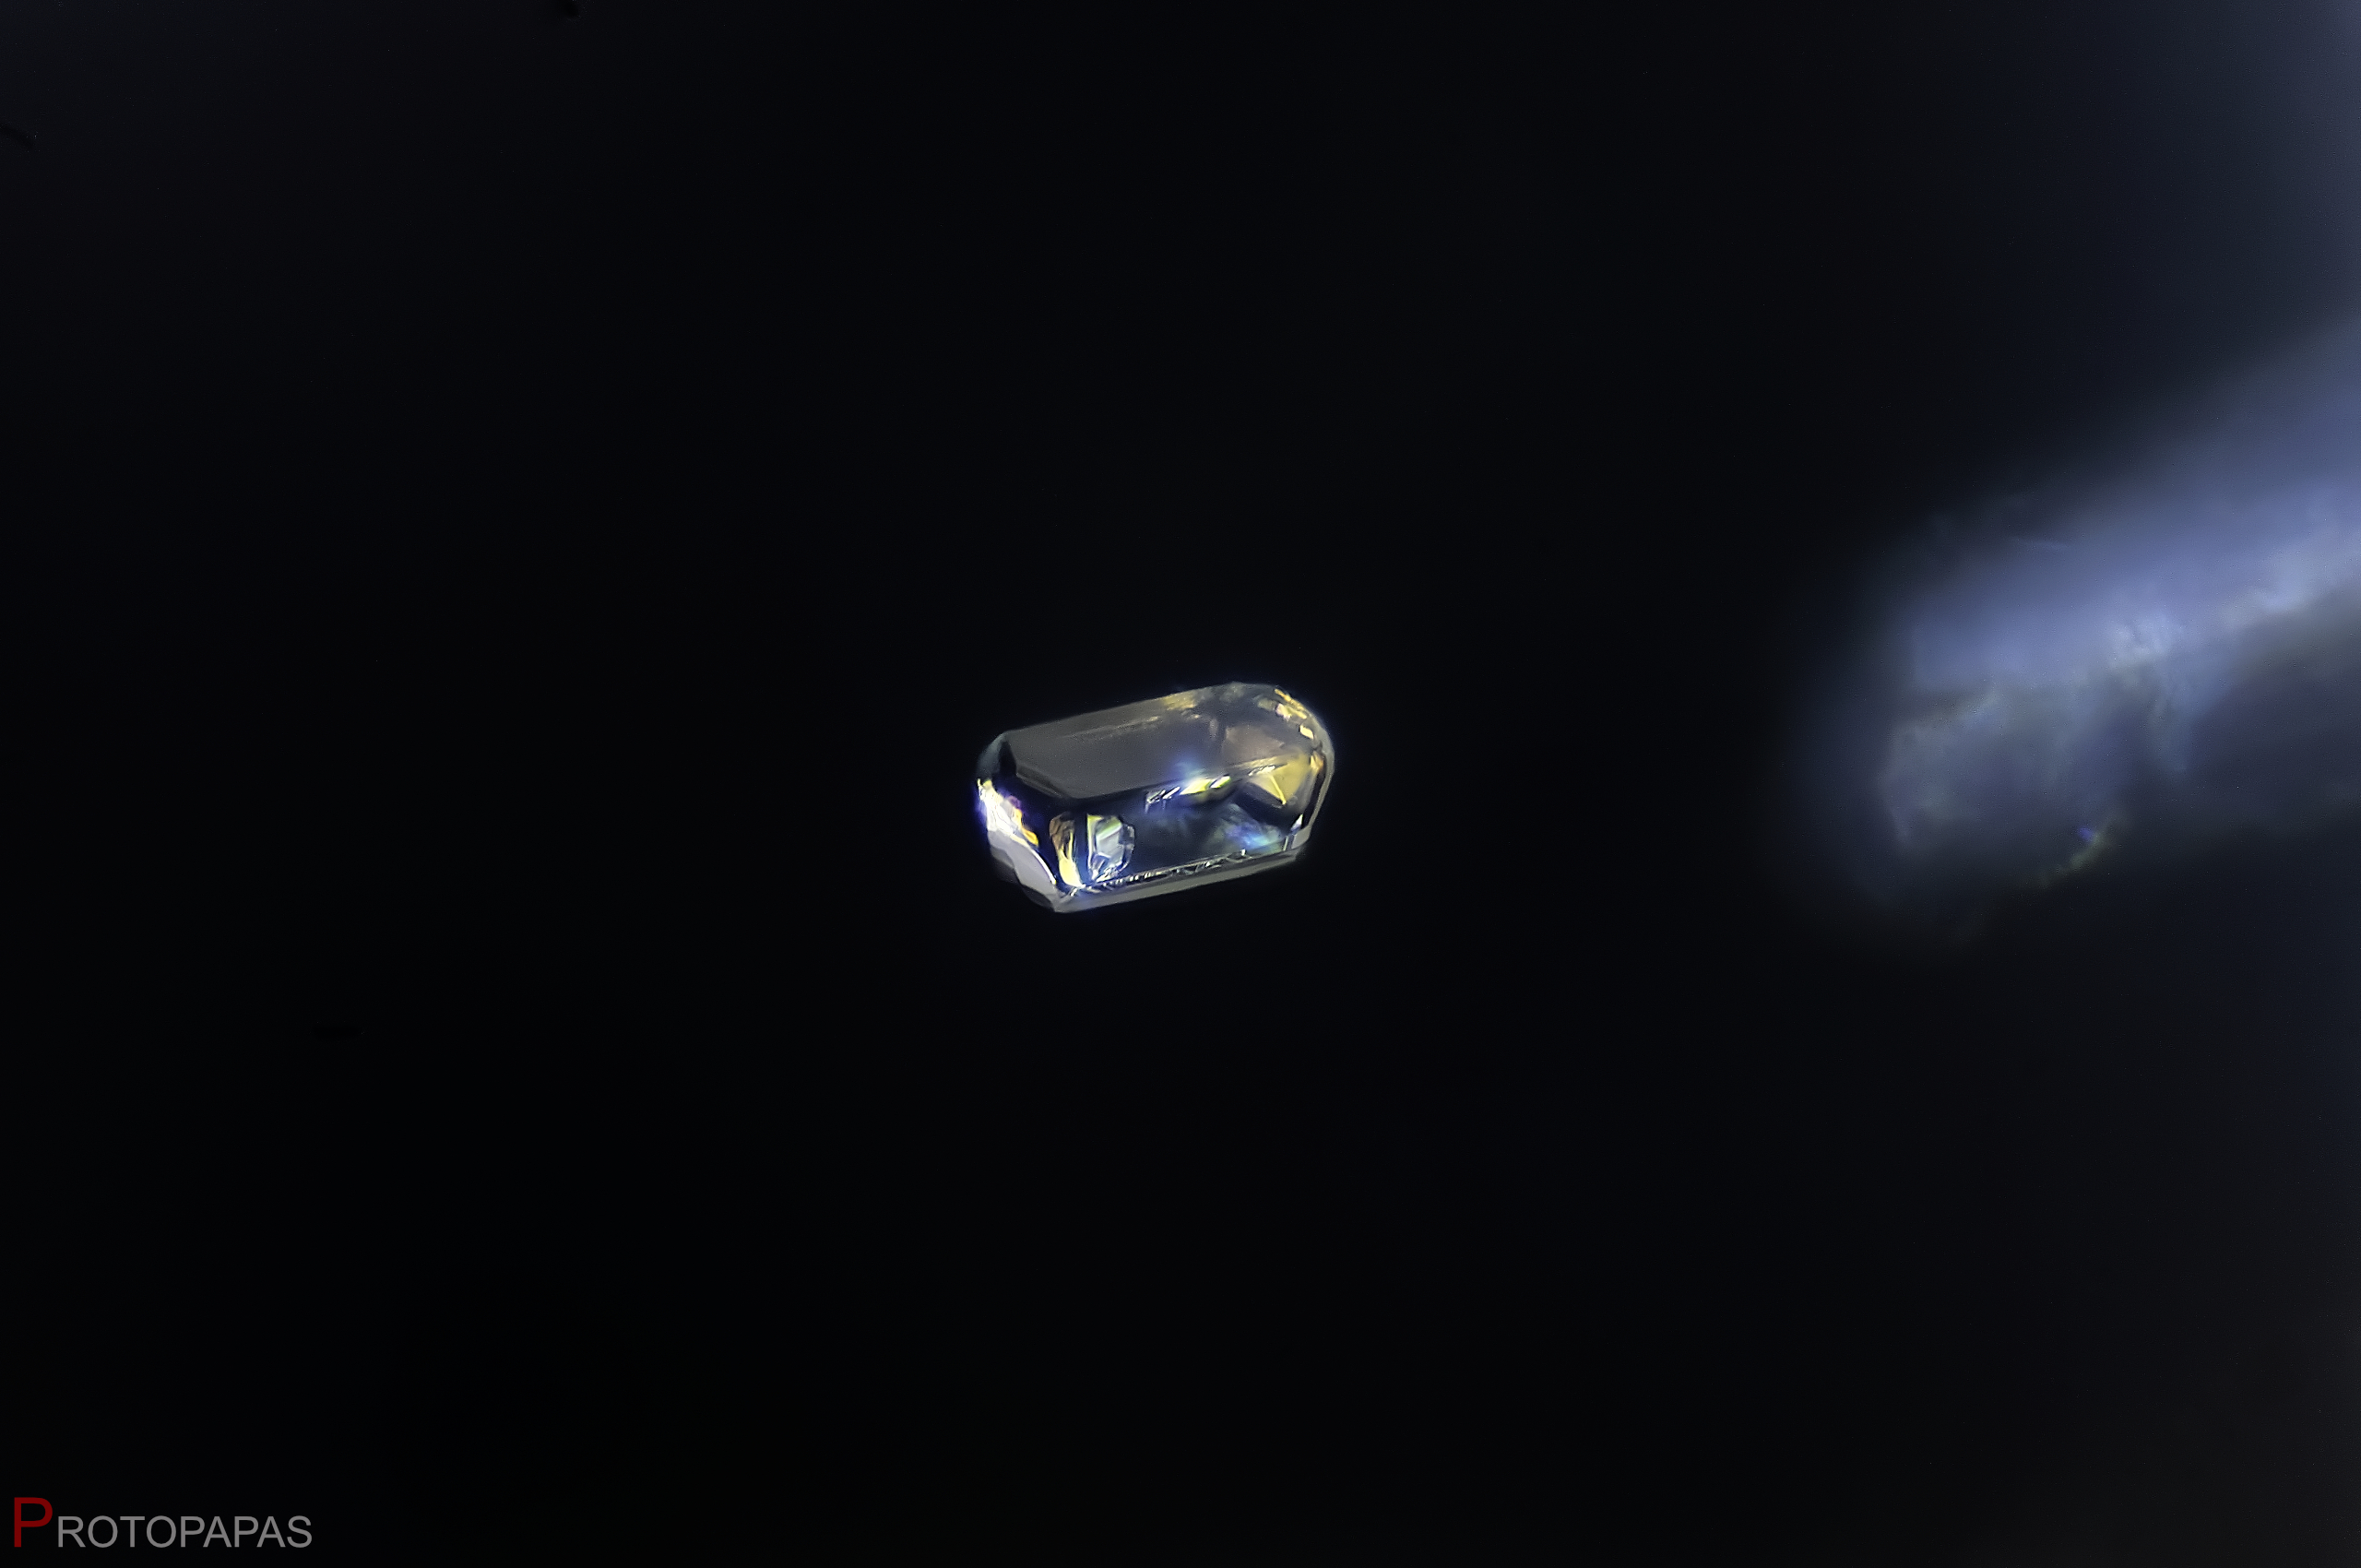 Probably Fluoroapatite crystal with large crystal included in unheated Spinel